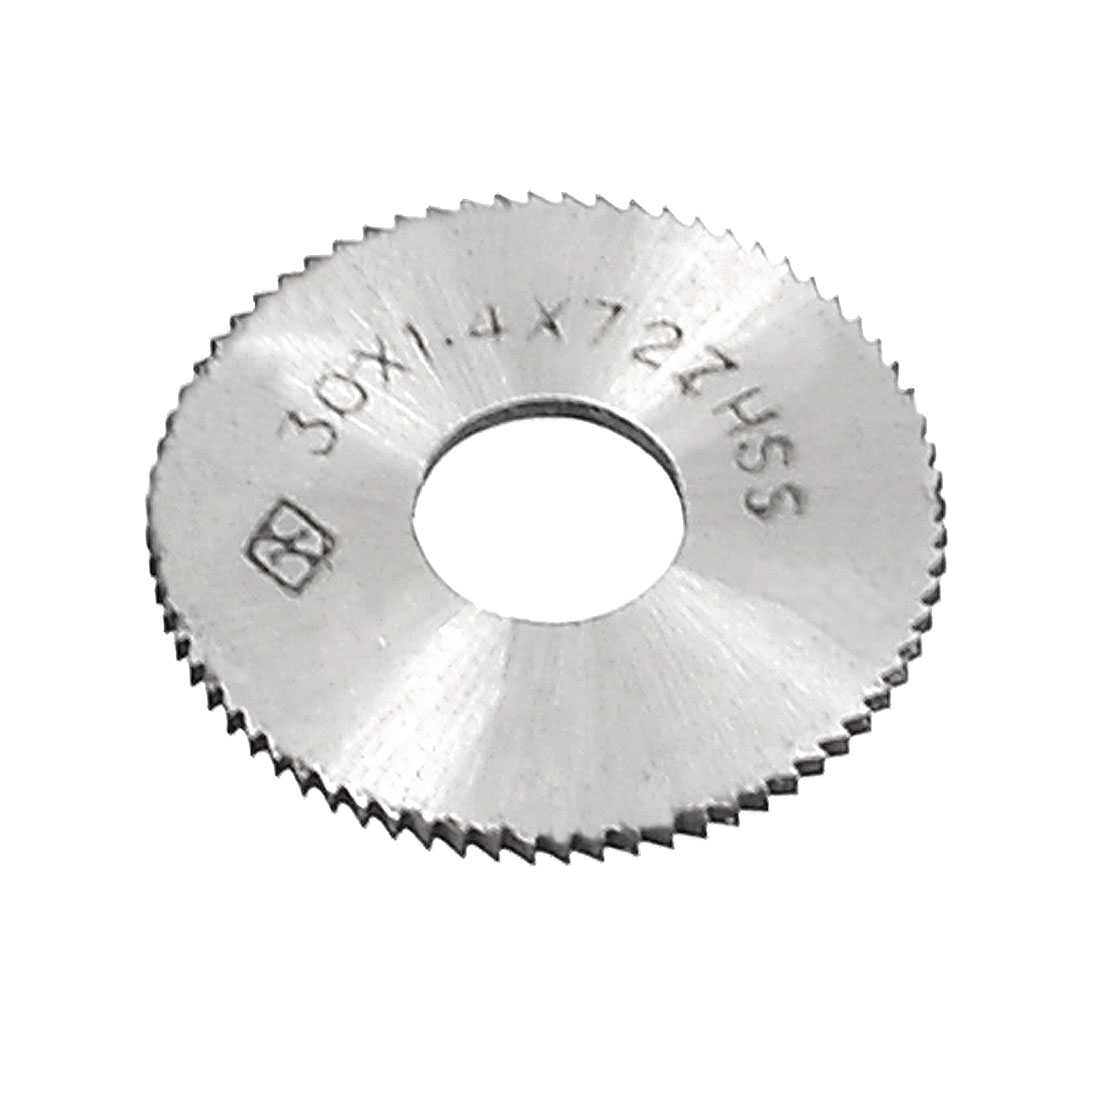 Unique Bargains HSS 72T Toothed Slitting Saw Cutting Tool 30mm x 1.4mm x 10mm